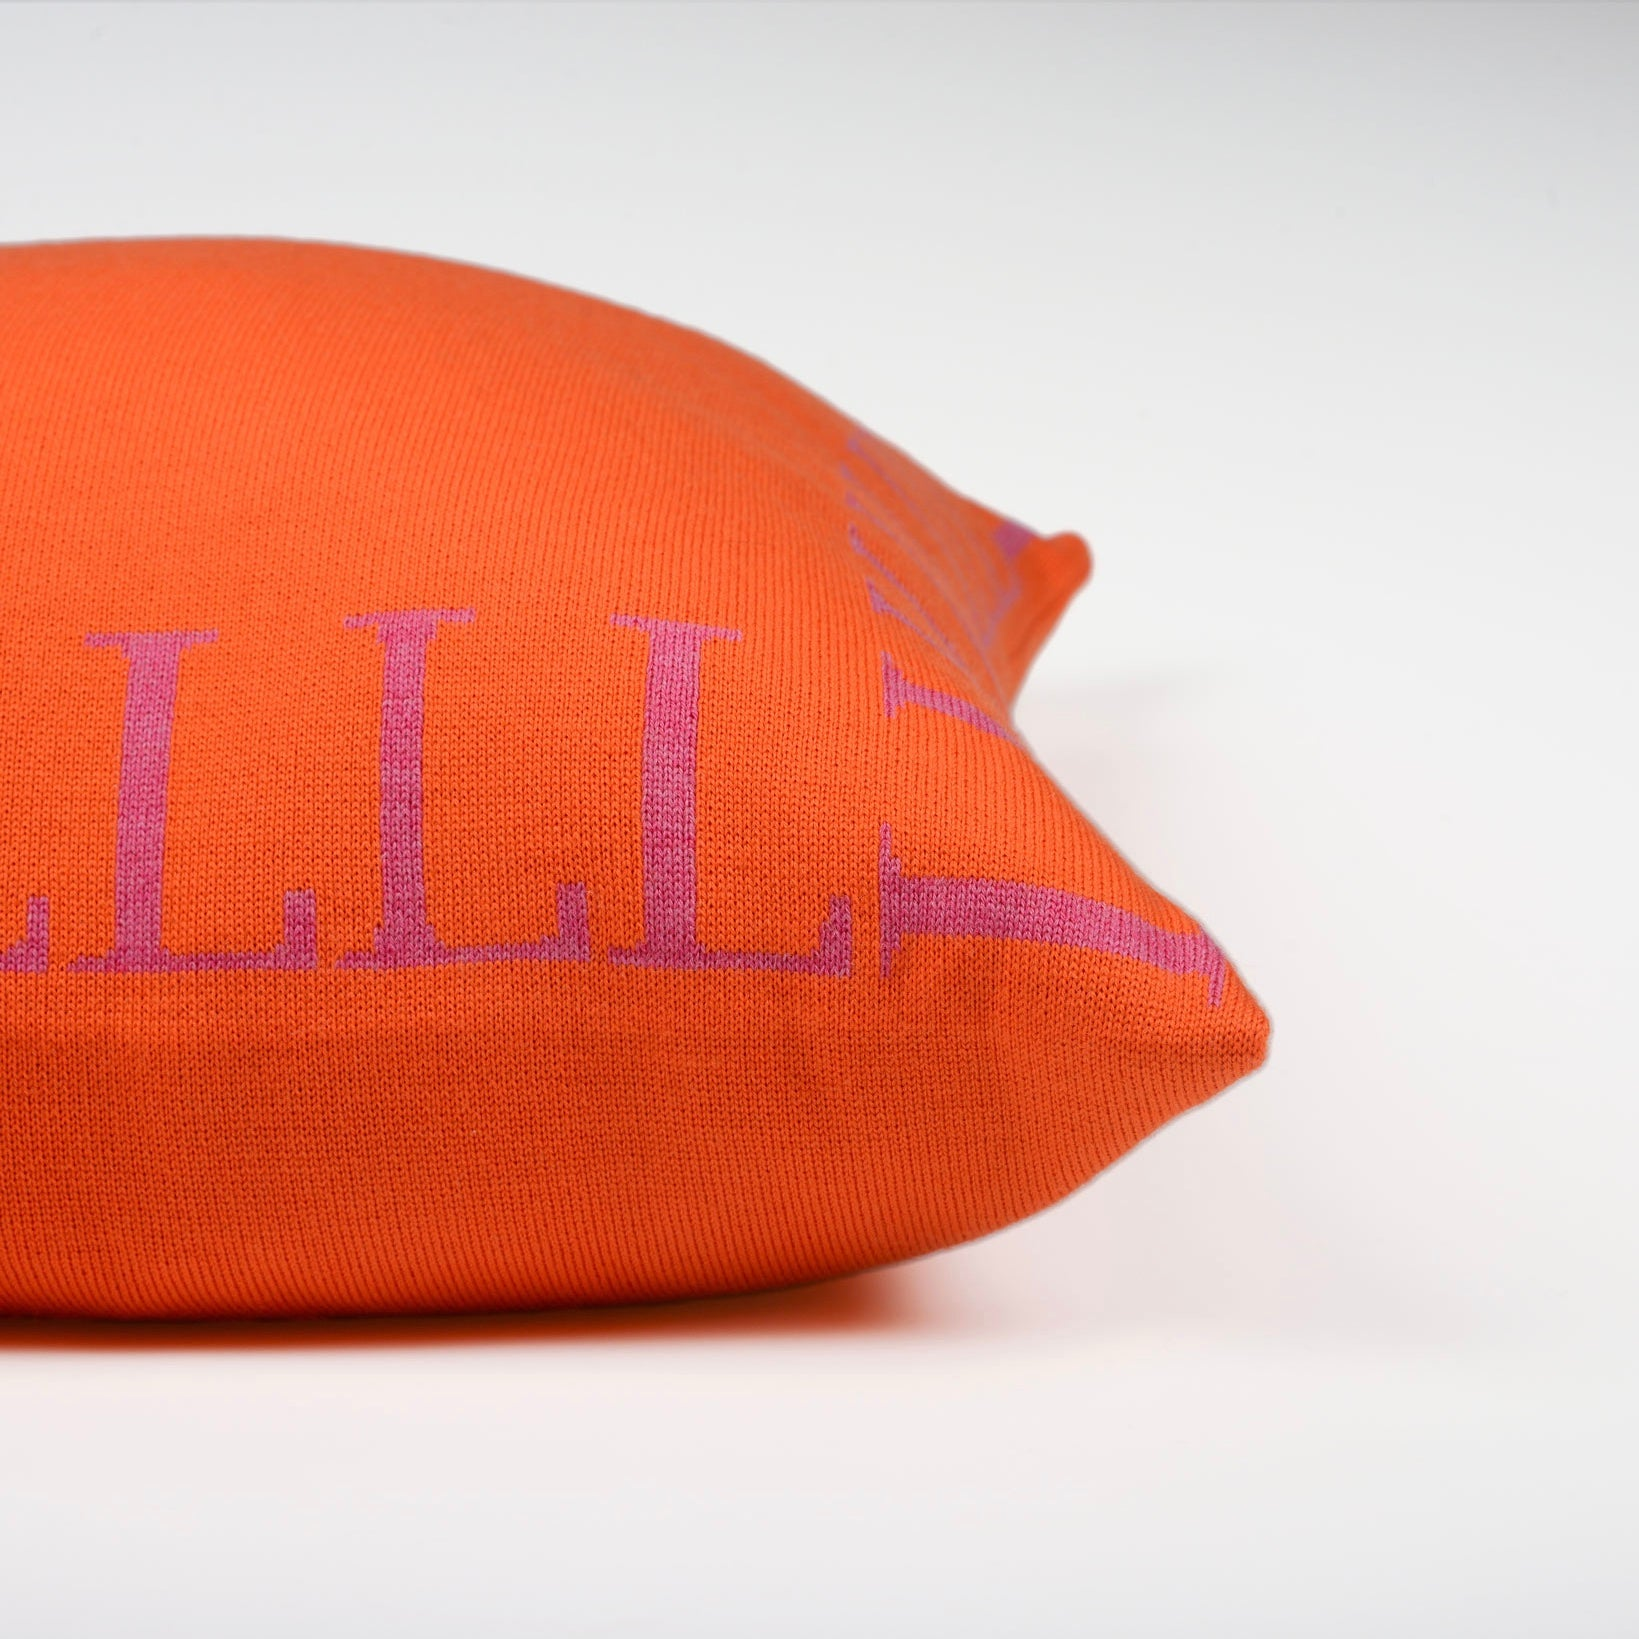 Cushion cover 50x50cm LLLL, orange / magenta